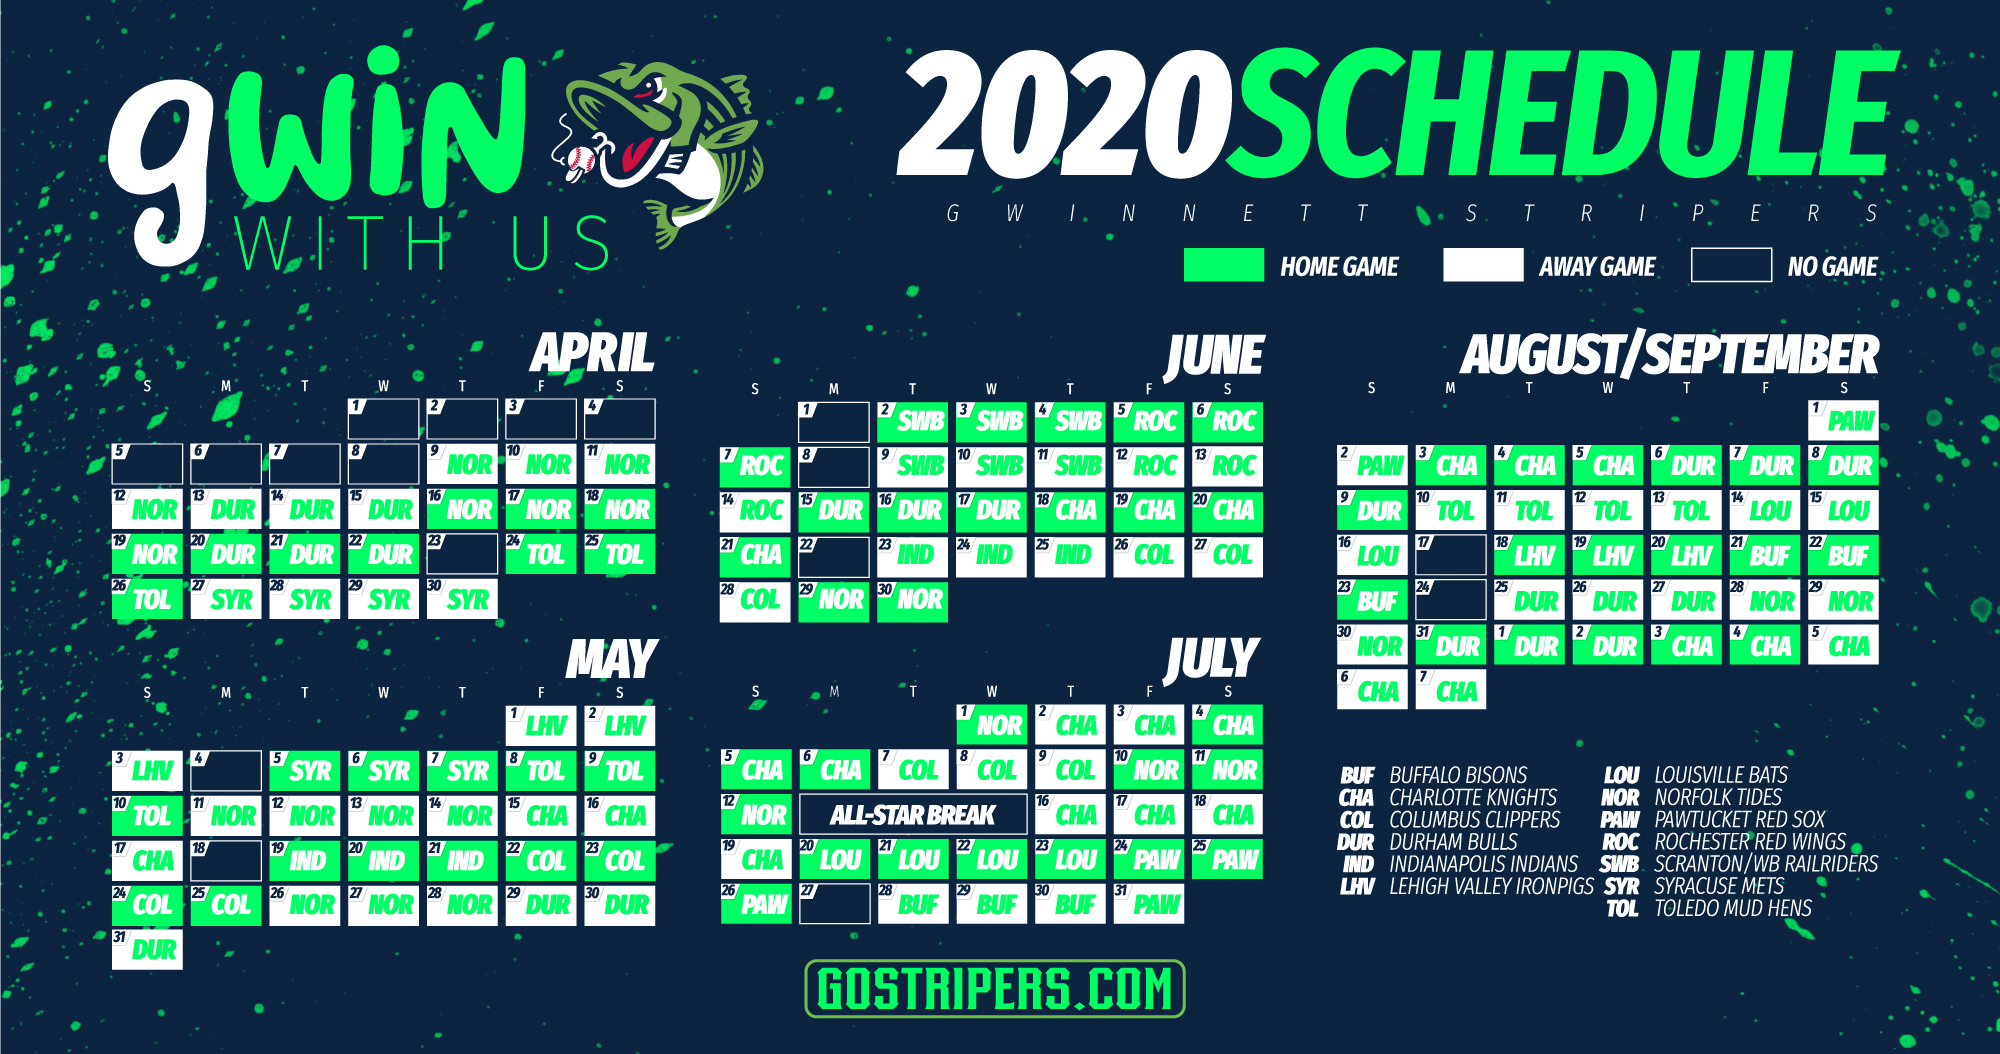 Railriders Schedule 2020 Gwinnett Stripers Announce 2020 Schedule Dates | Gwinnett Stripers